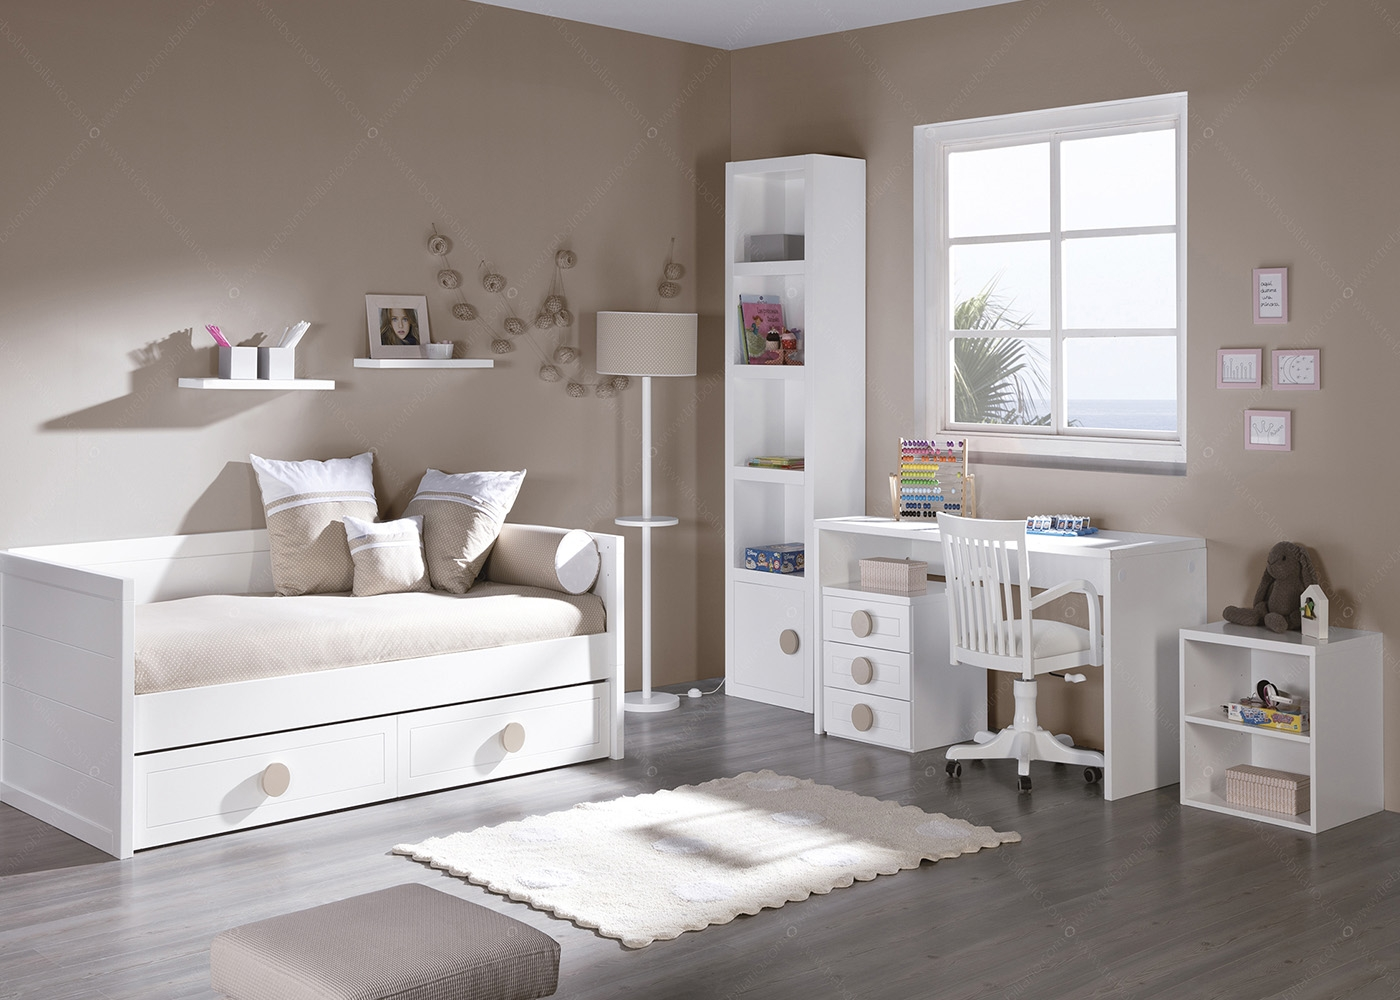 banquette chambre enfant maison design. Black Bedroom Furniture Sets. Home Design Ideas